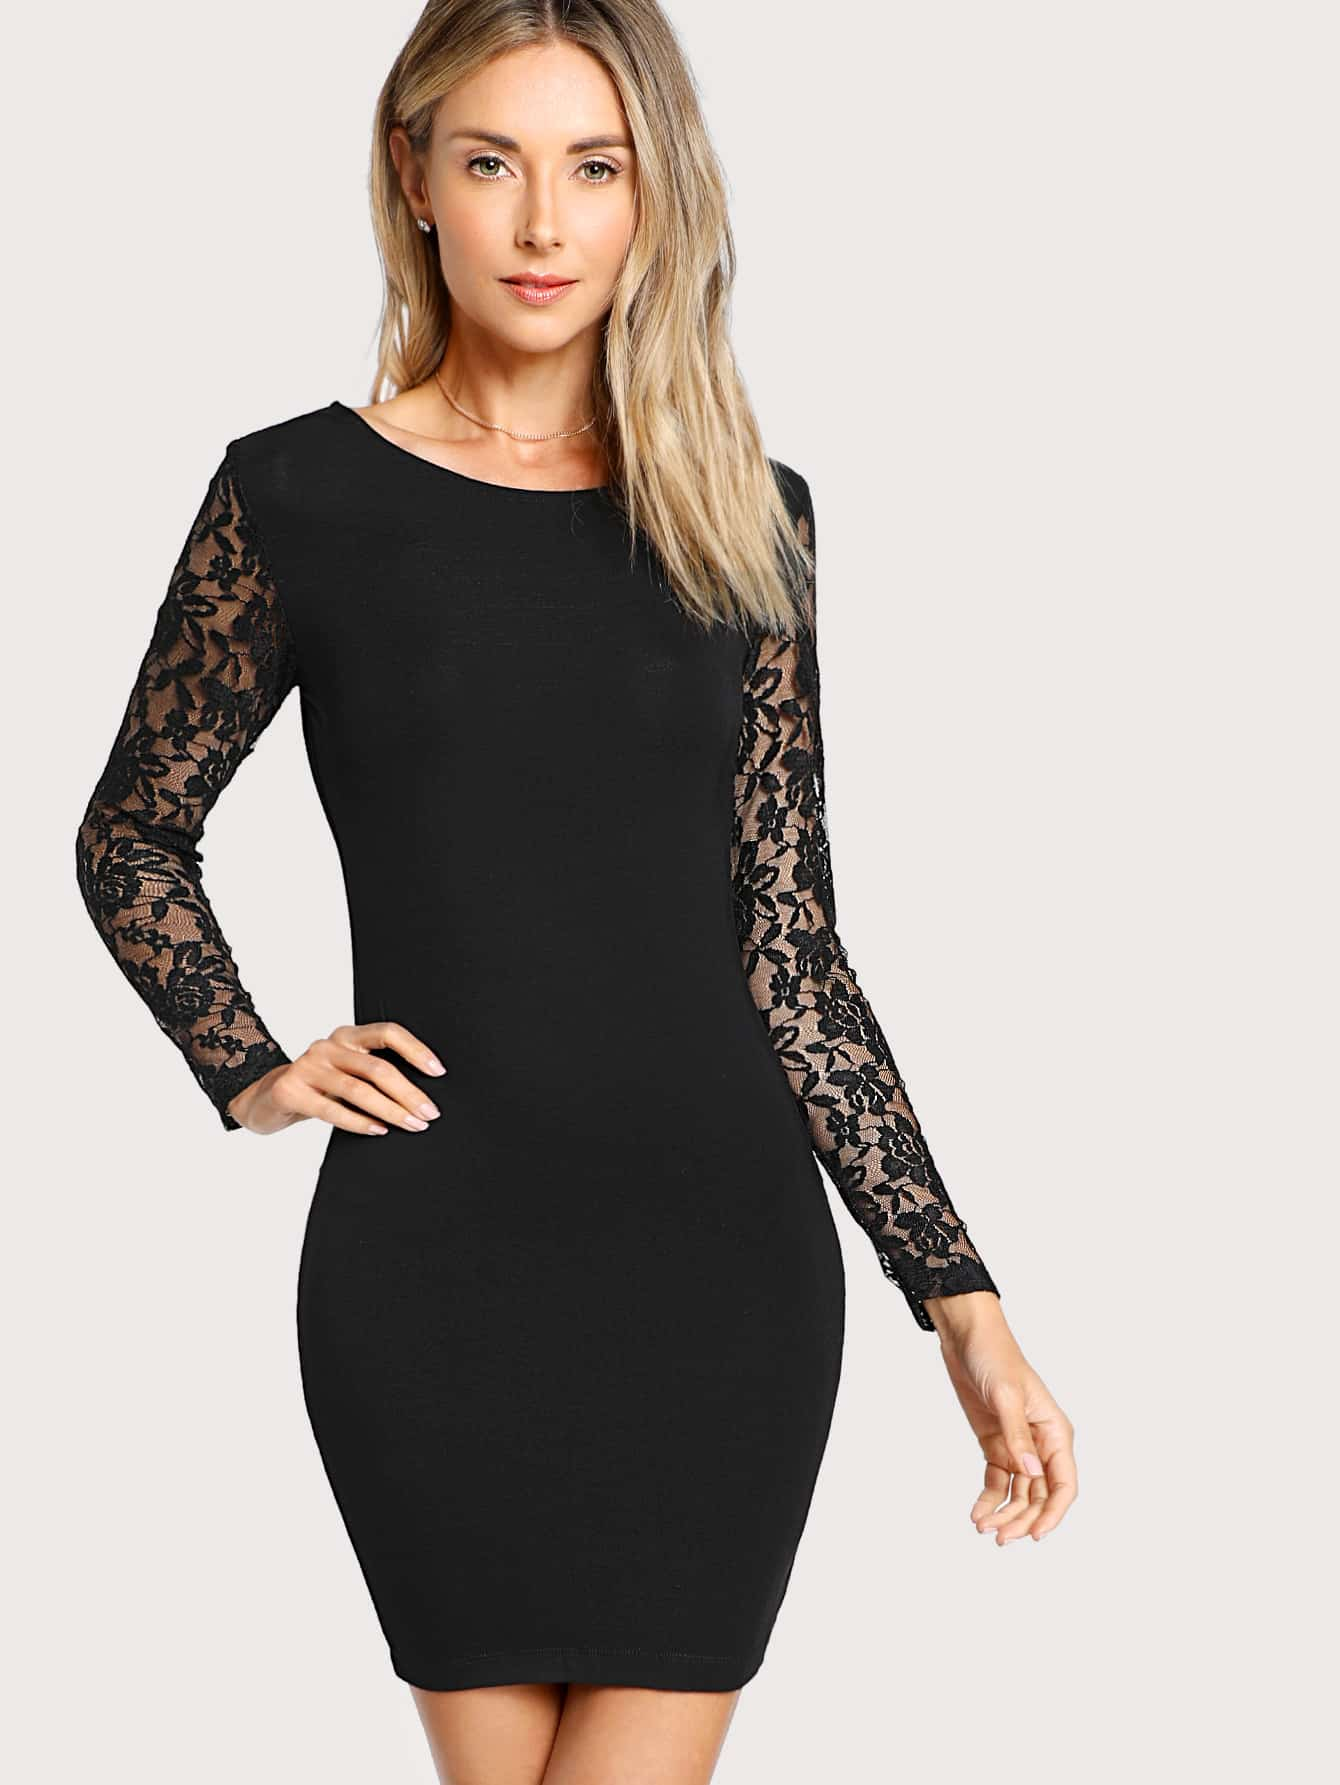 Floral Lace Insert Form Fitting Dress guipure lace form fitting dress